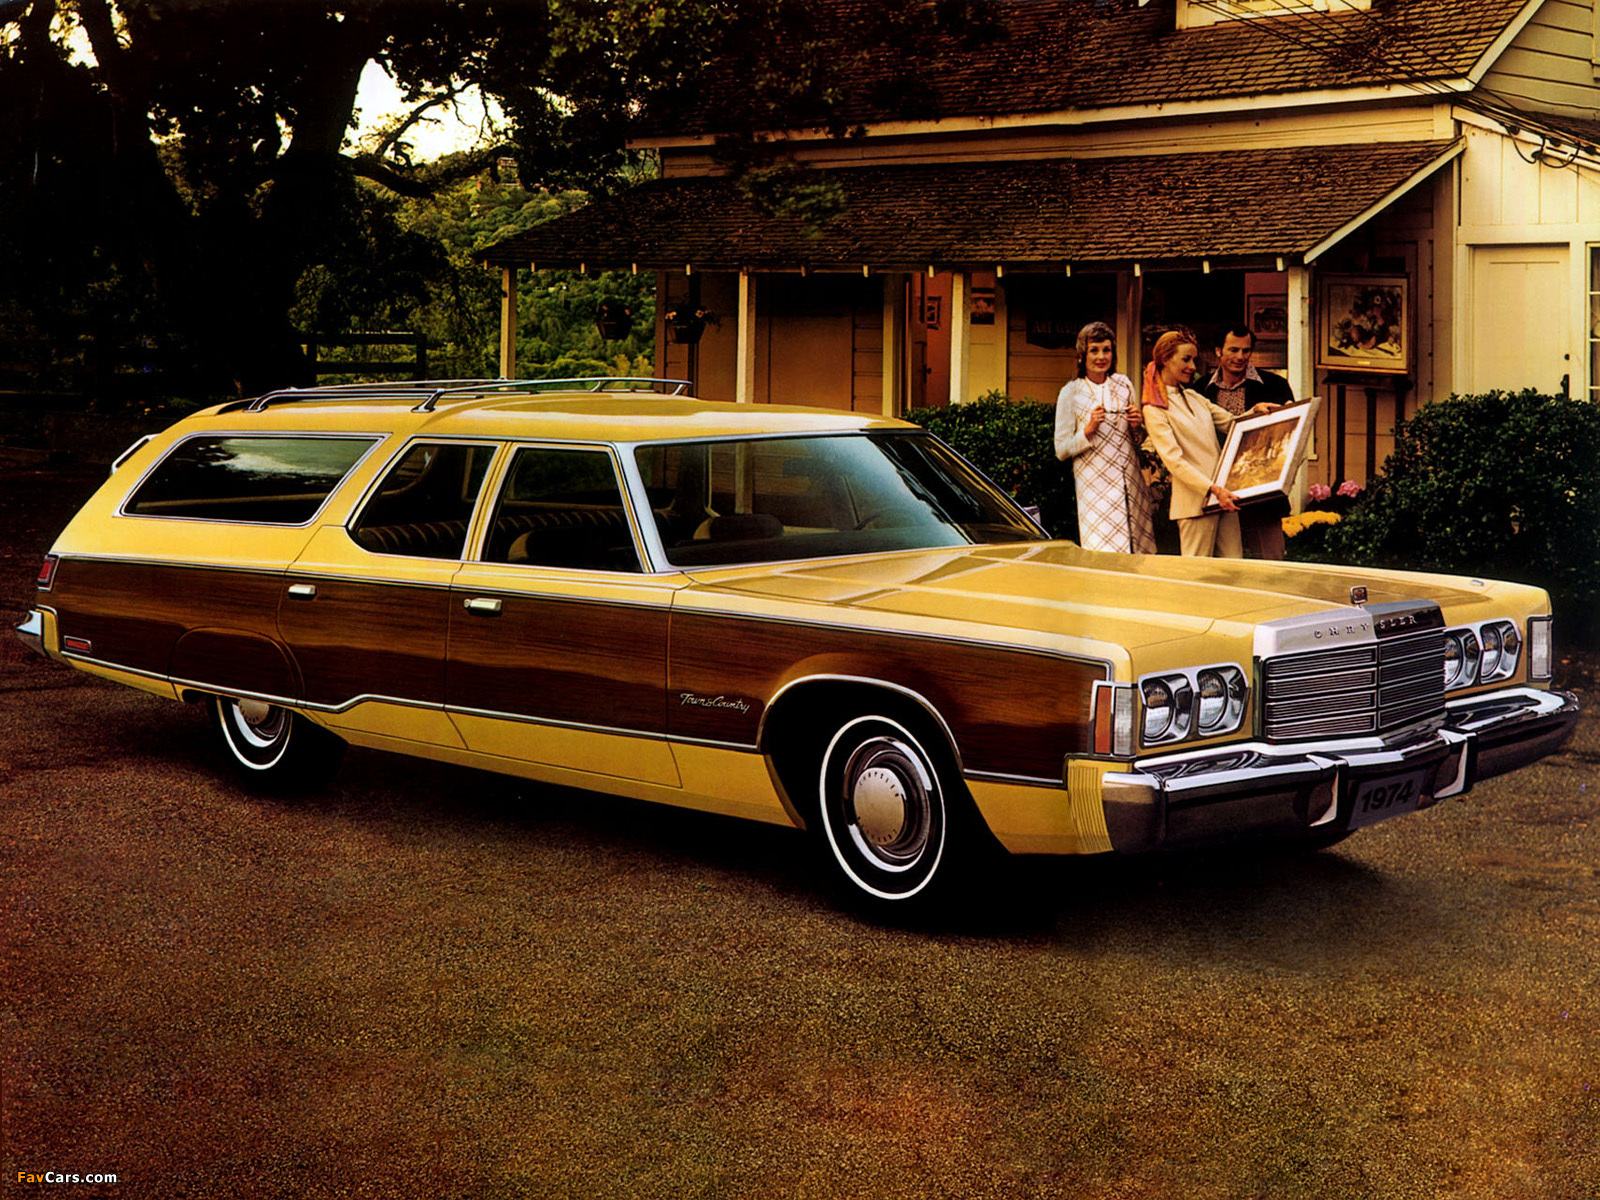 Town And Country Chrysler >> Images of Chrysler Town & Country Station Wagon 1974 (1600x1200)